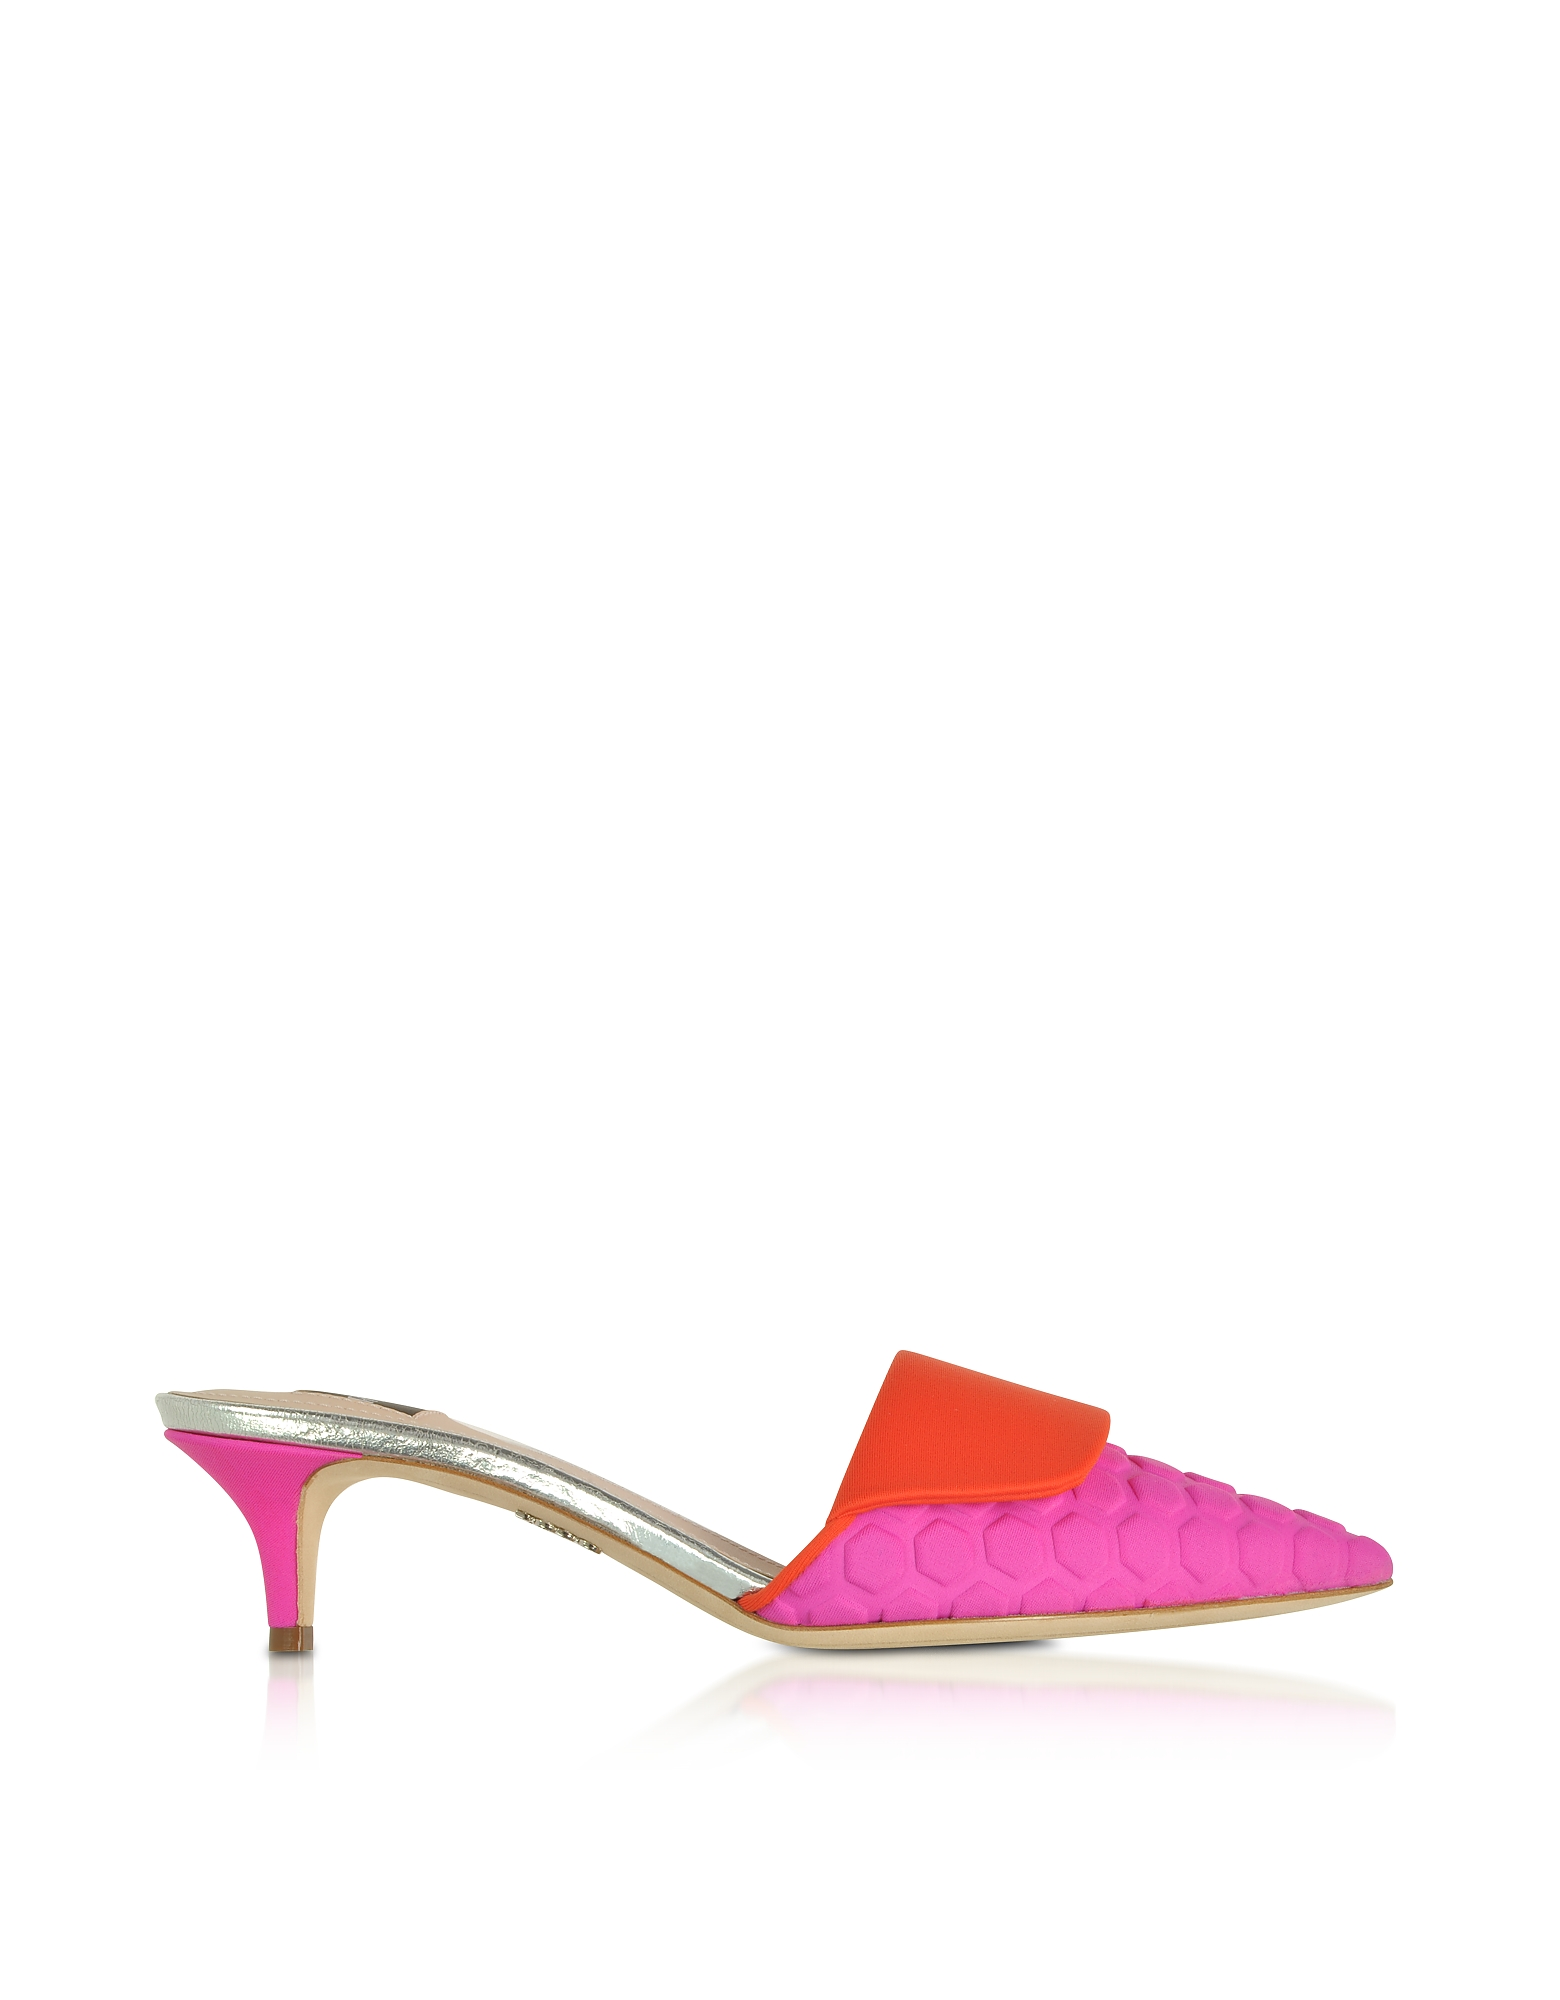 Rodo Shoes, Fuchsia and Red Scuba Fabric Kitten Heel Mules